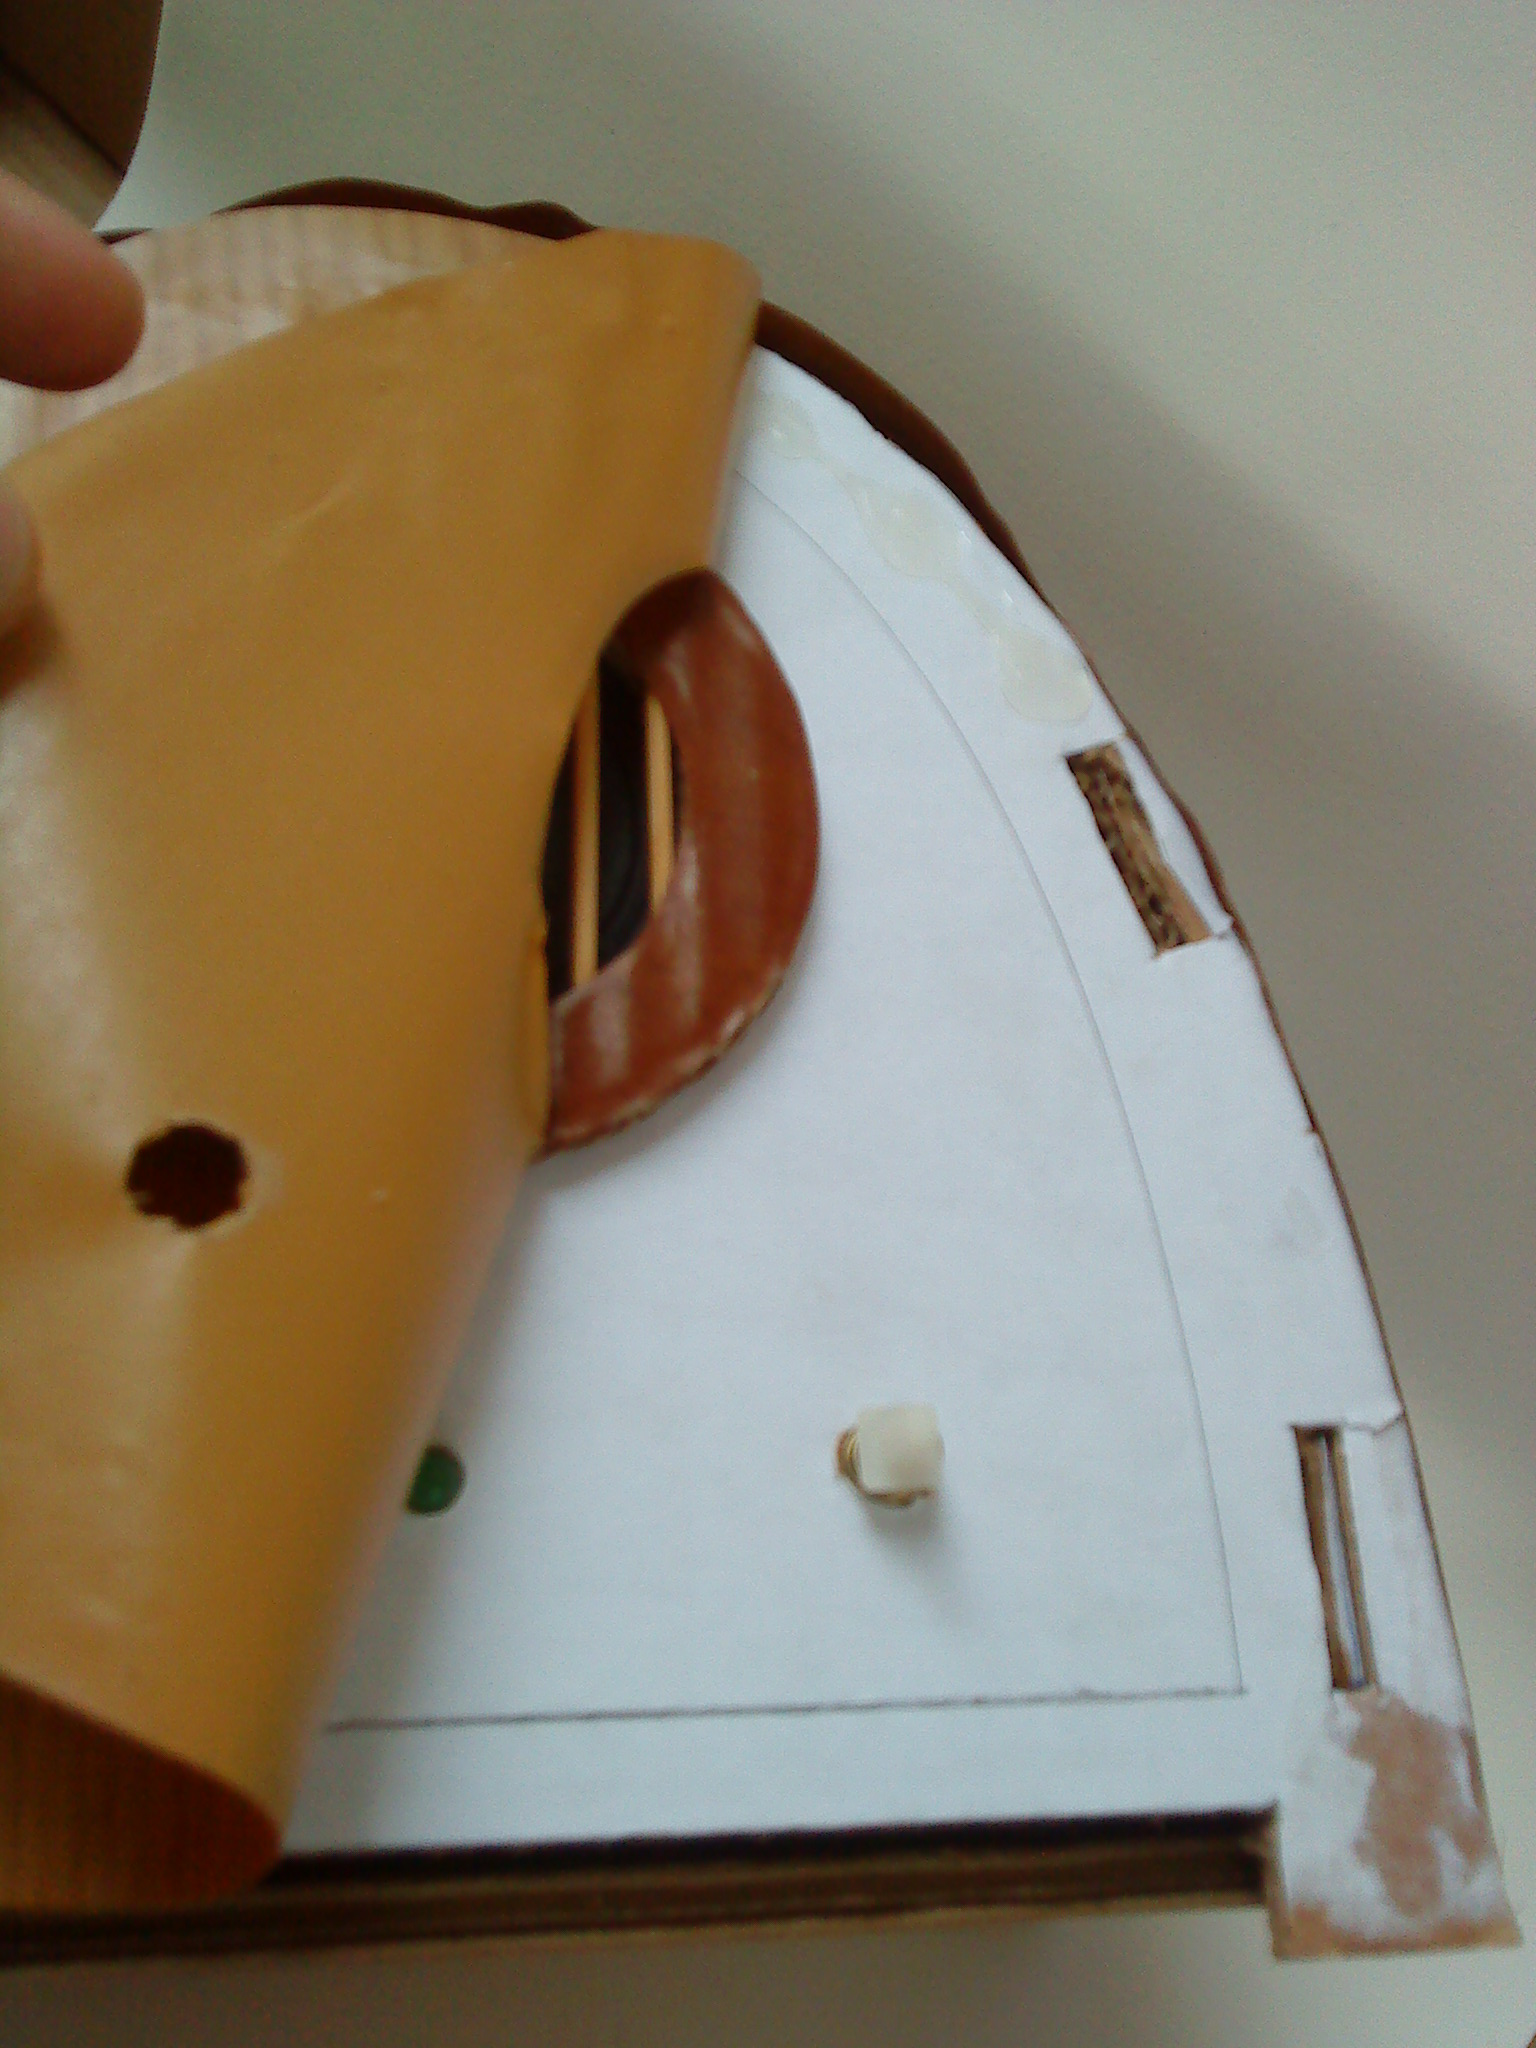 Picture of Pasting the Contact Paper